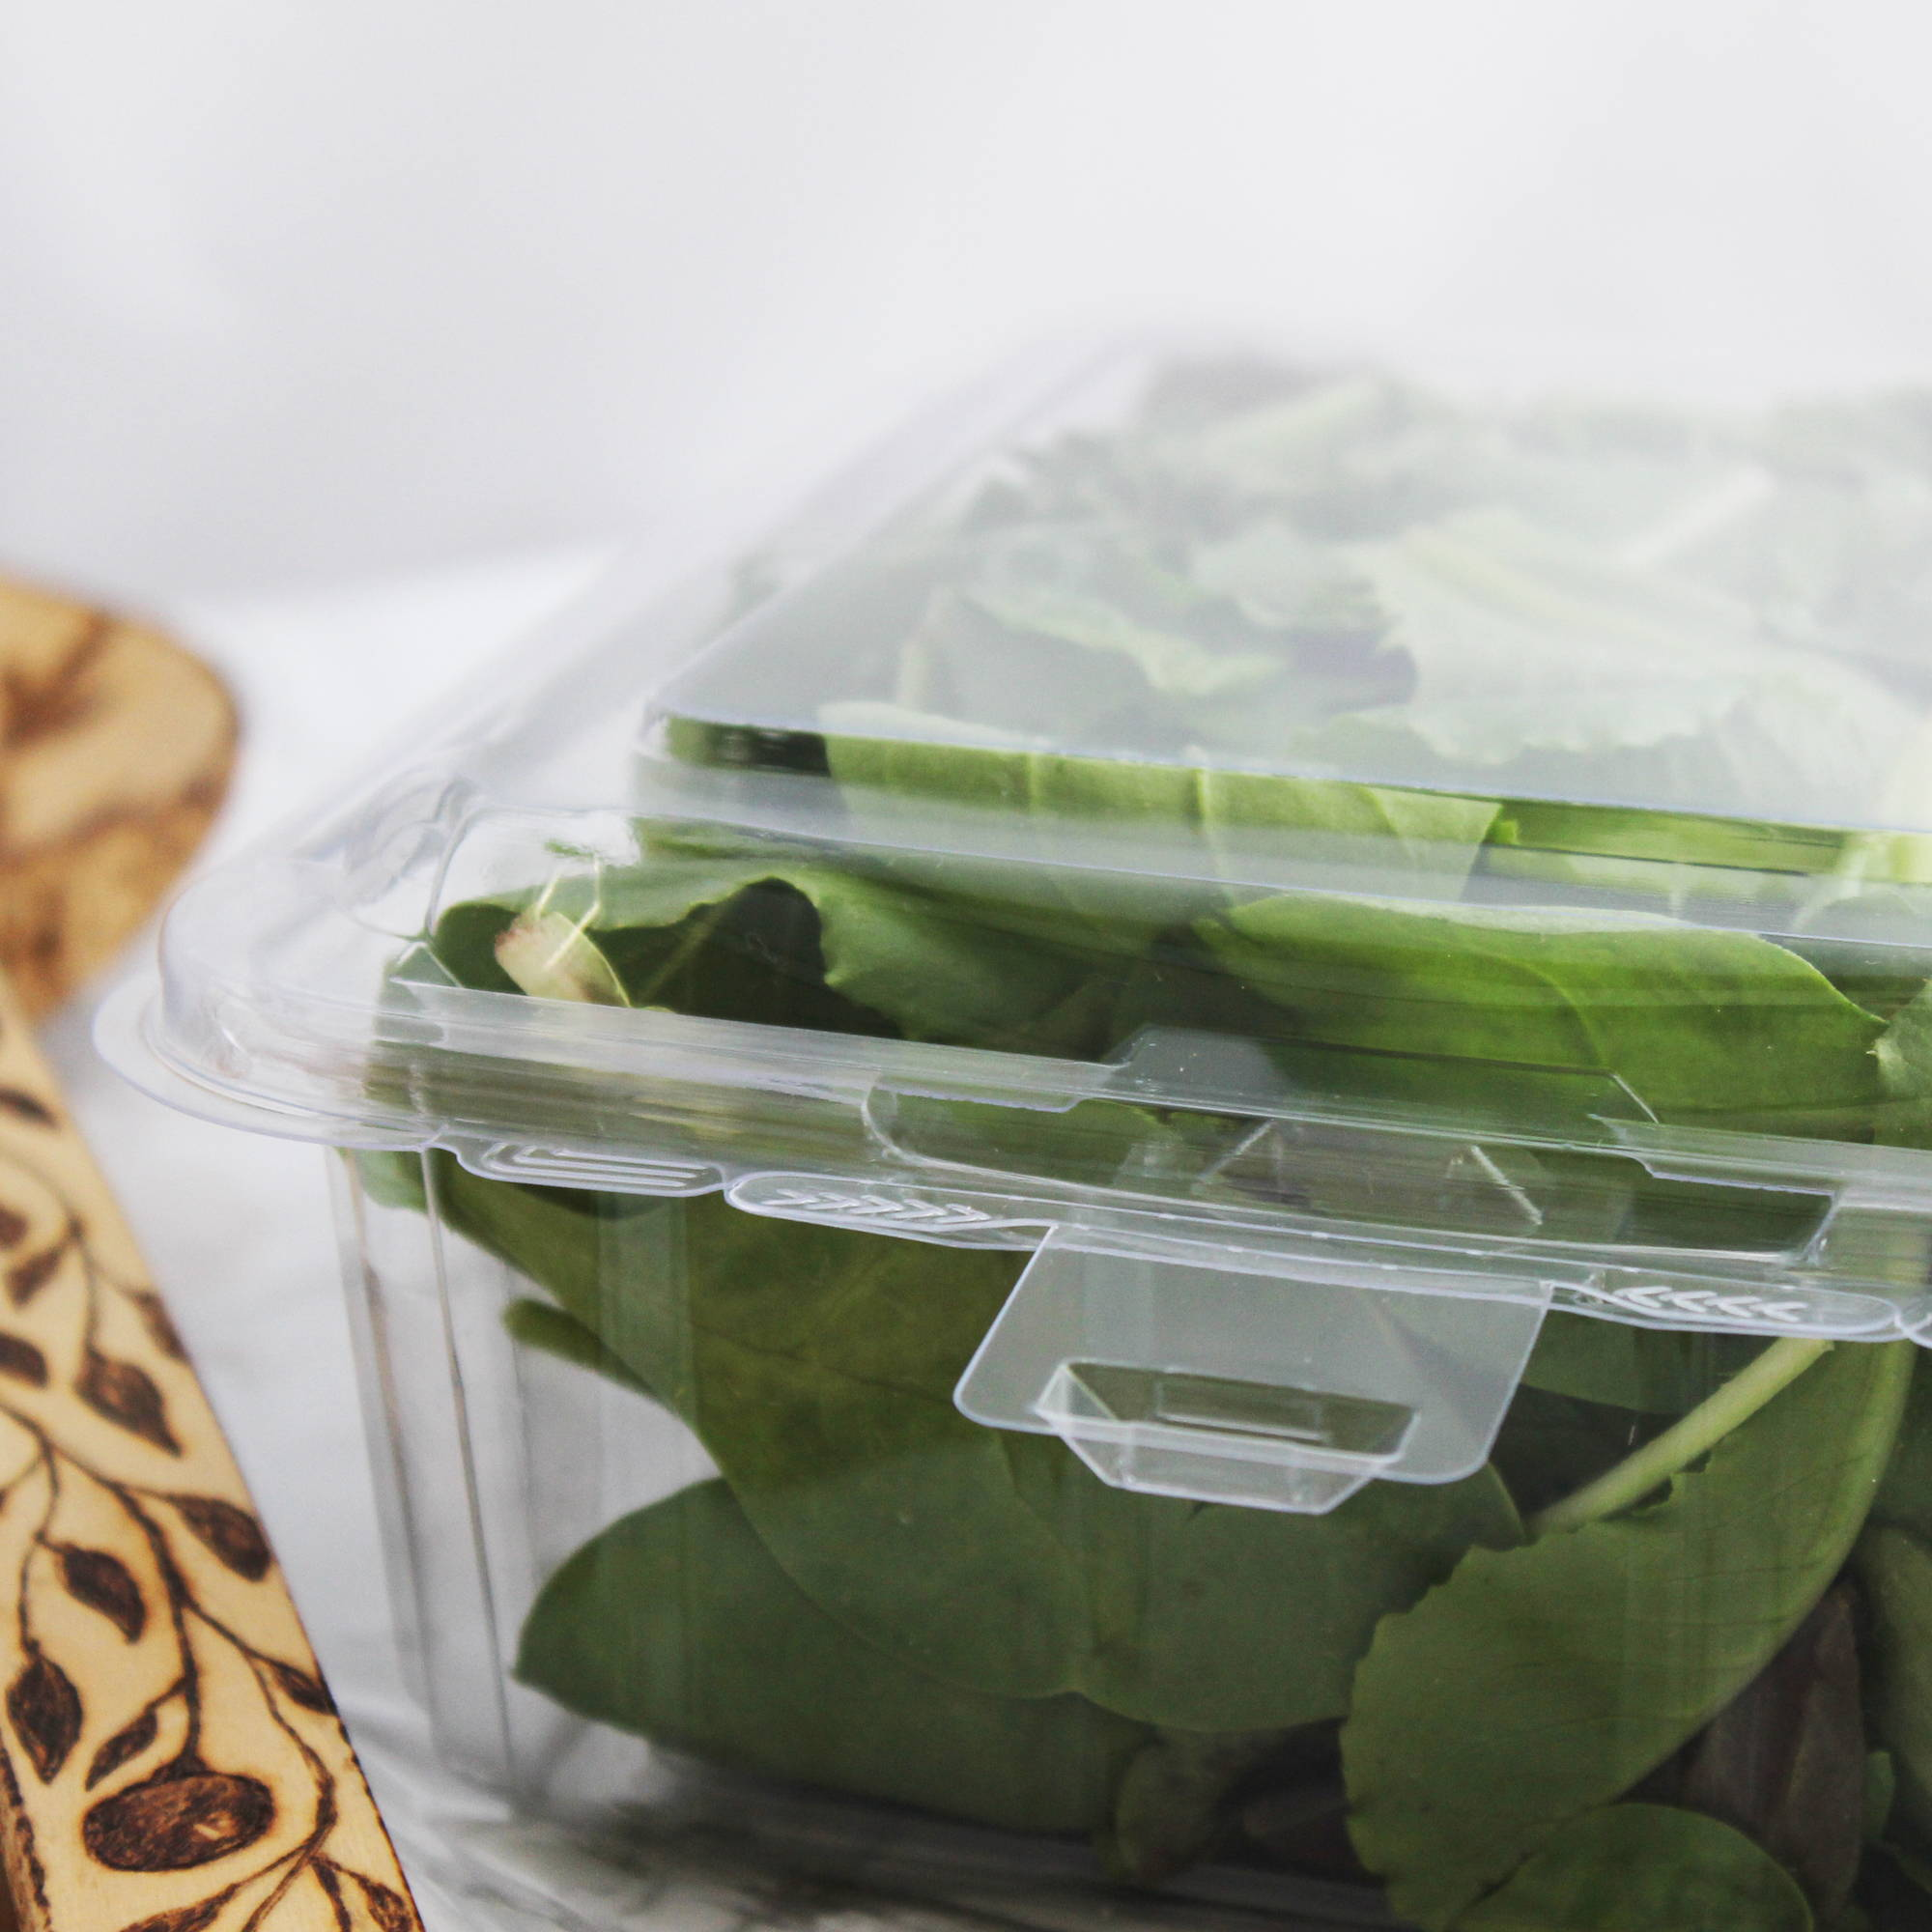 plant based food packaging for herbs and microgreens, canada